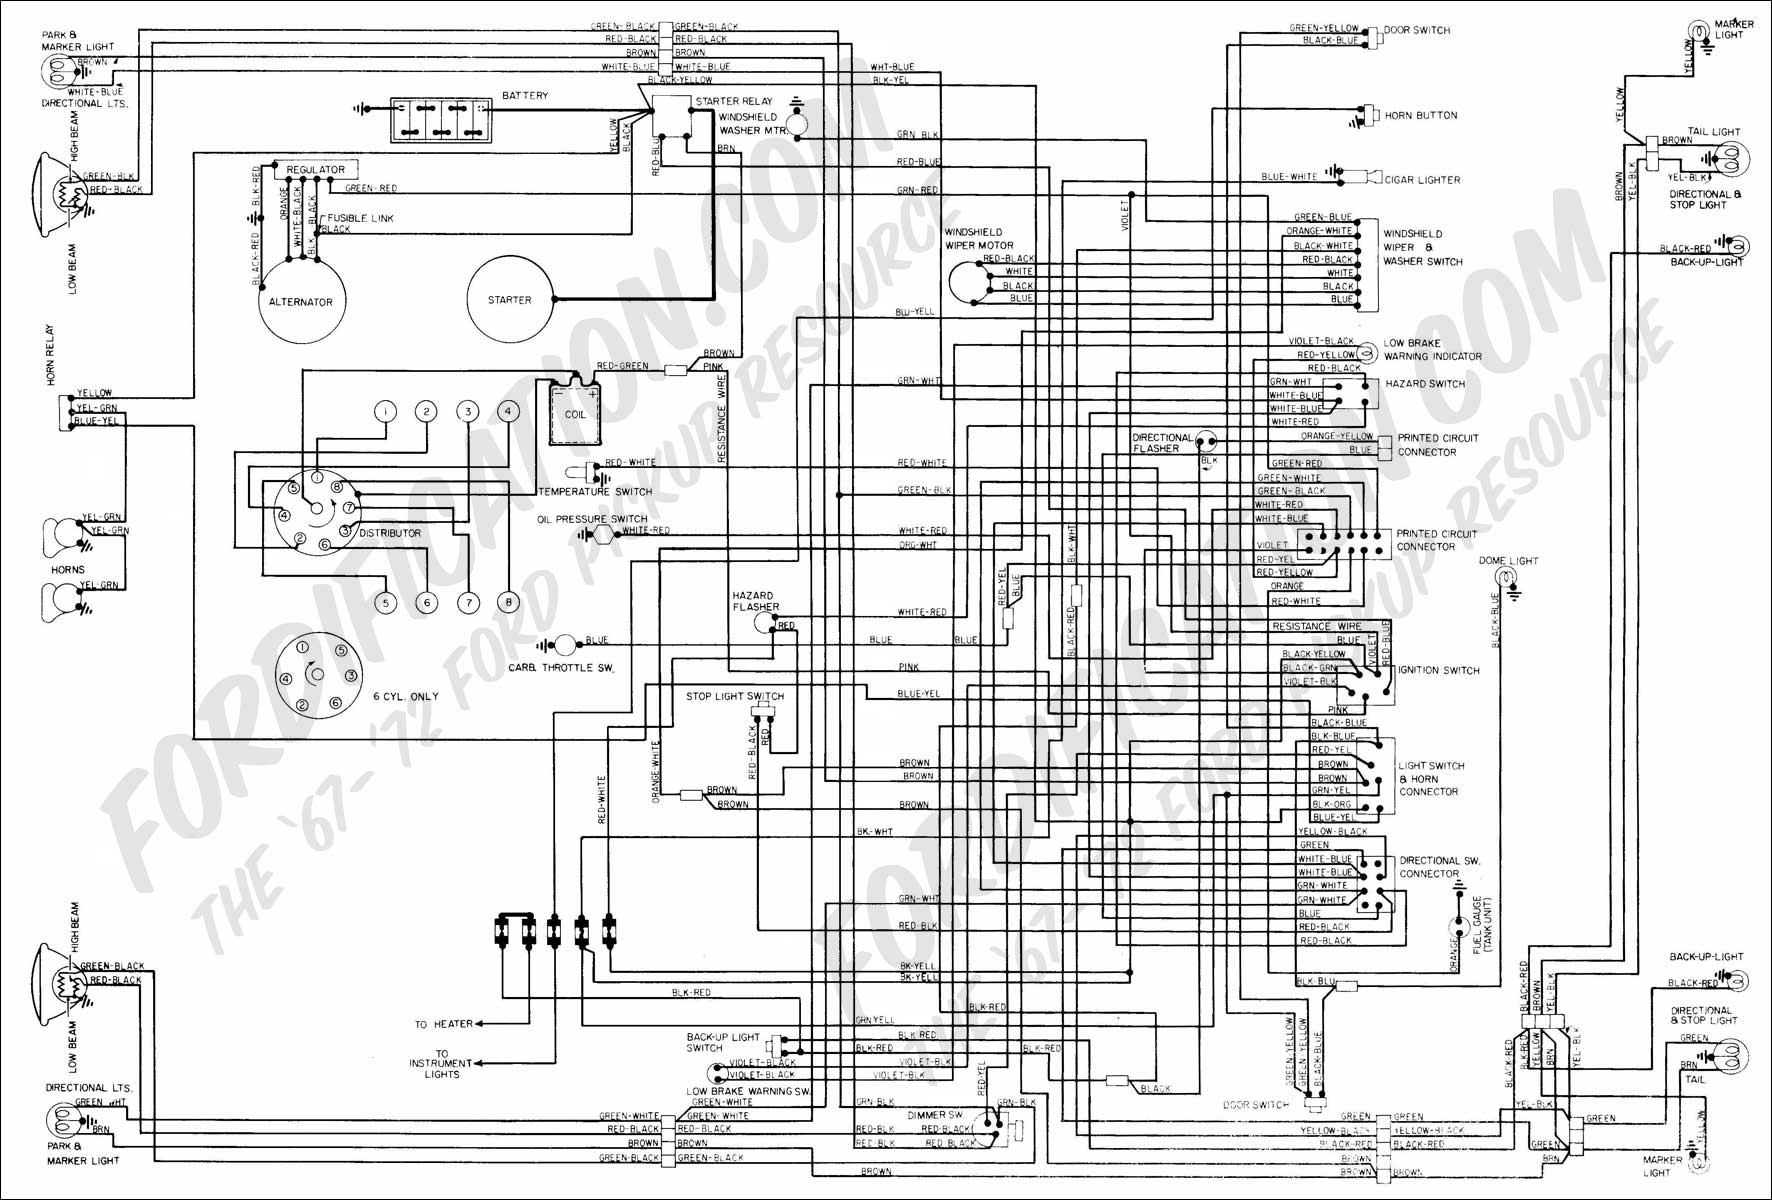 Wiring Diagram Ford F150 - Get Rid Of Wiring Diagram Problem